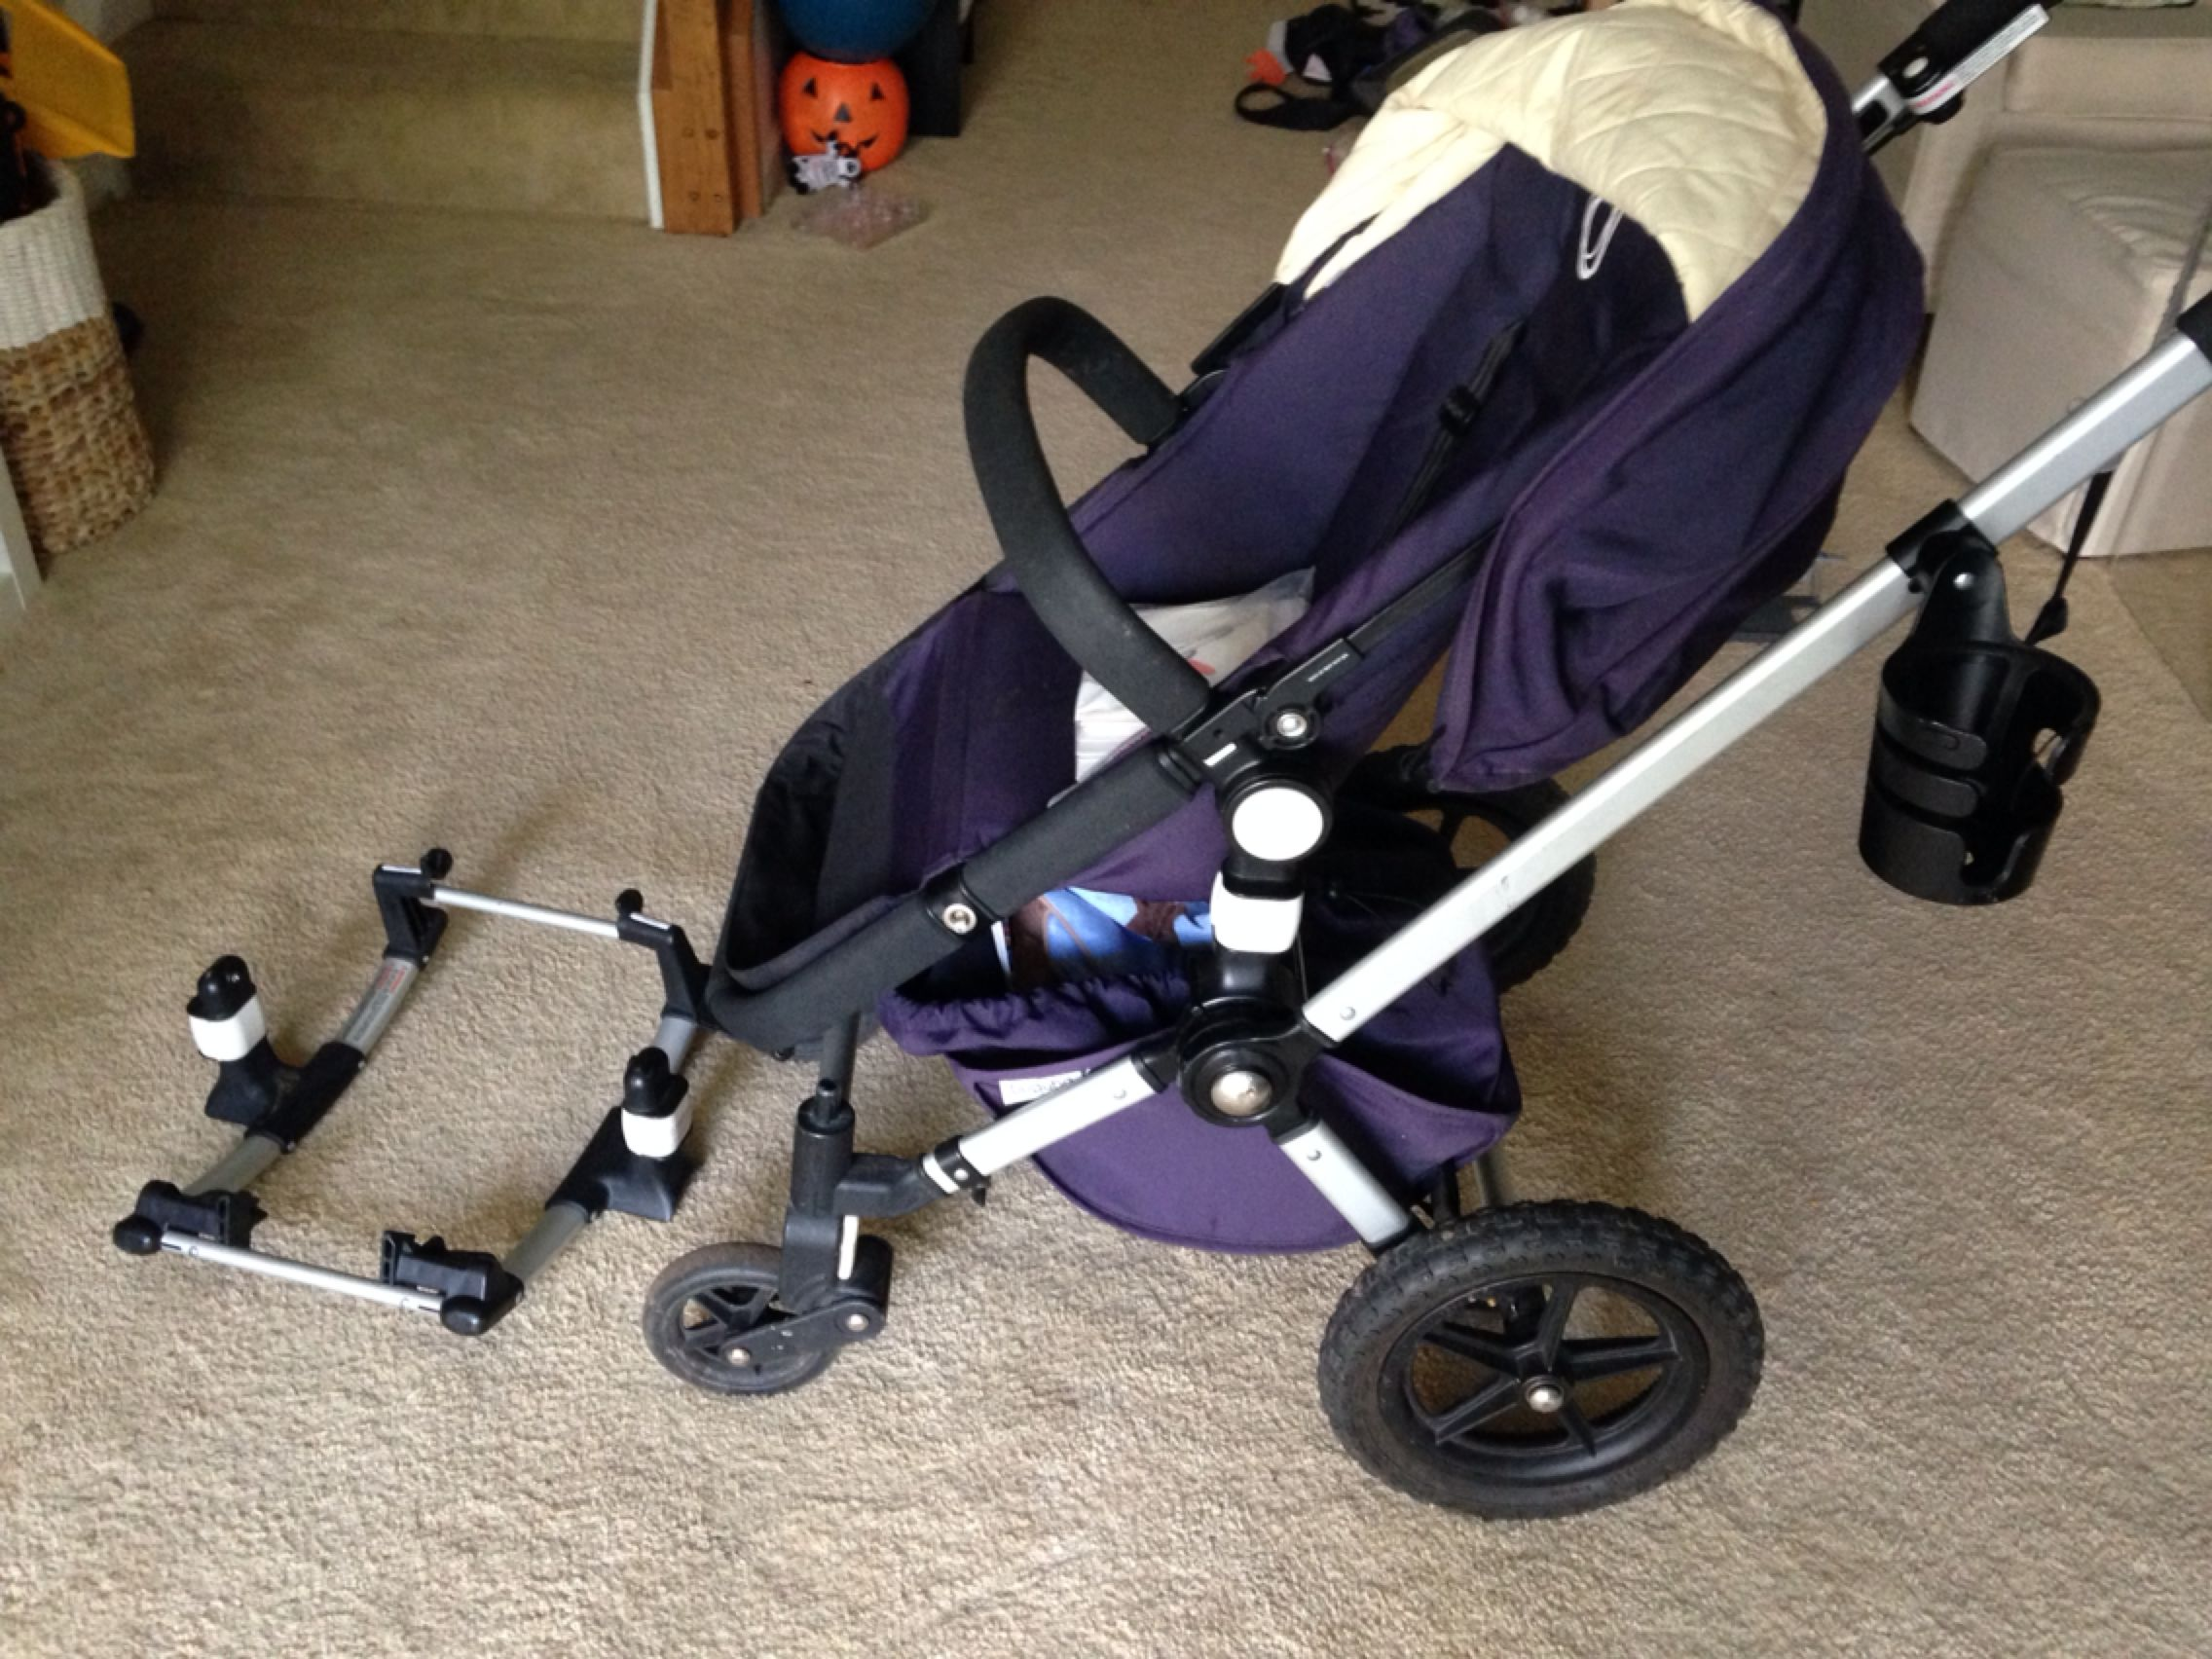 Beste Best Bugaboo Frog Stroller With Graco Car Seat Attachment And Cup LD-81